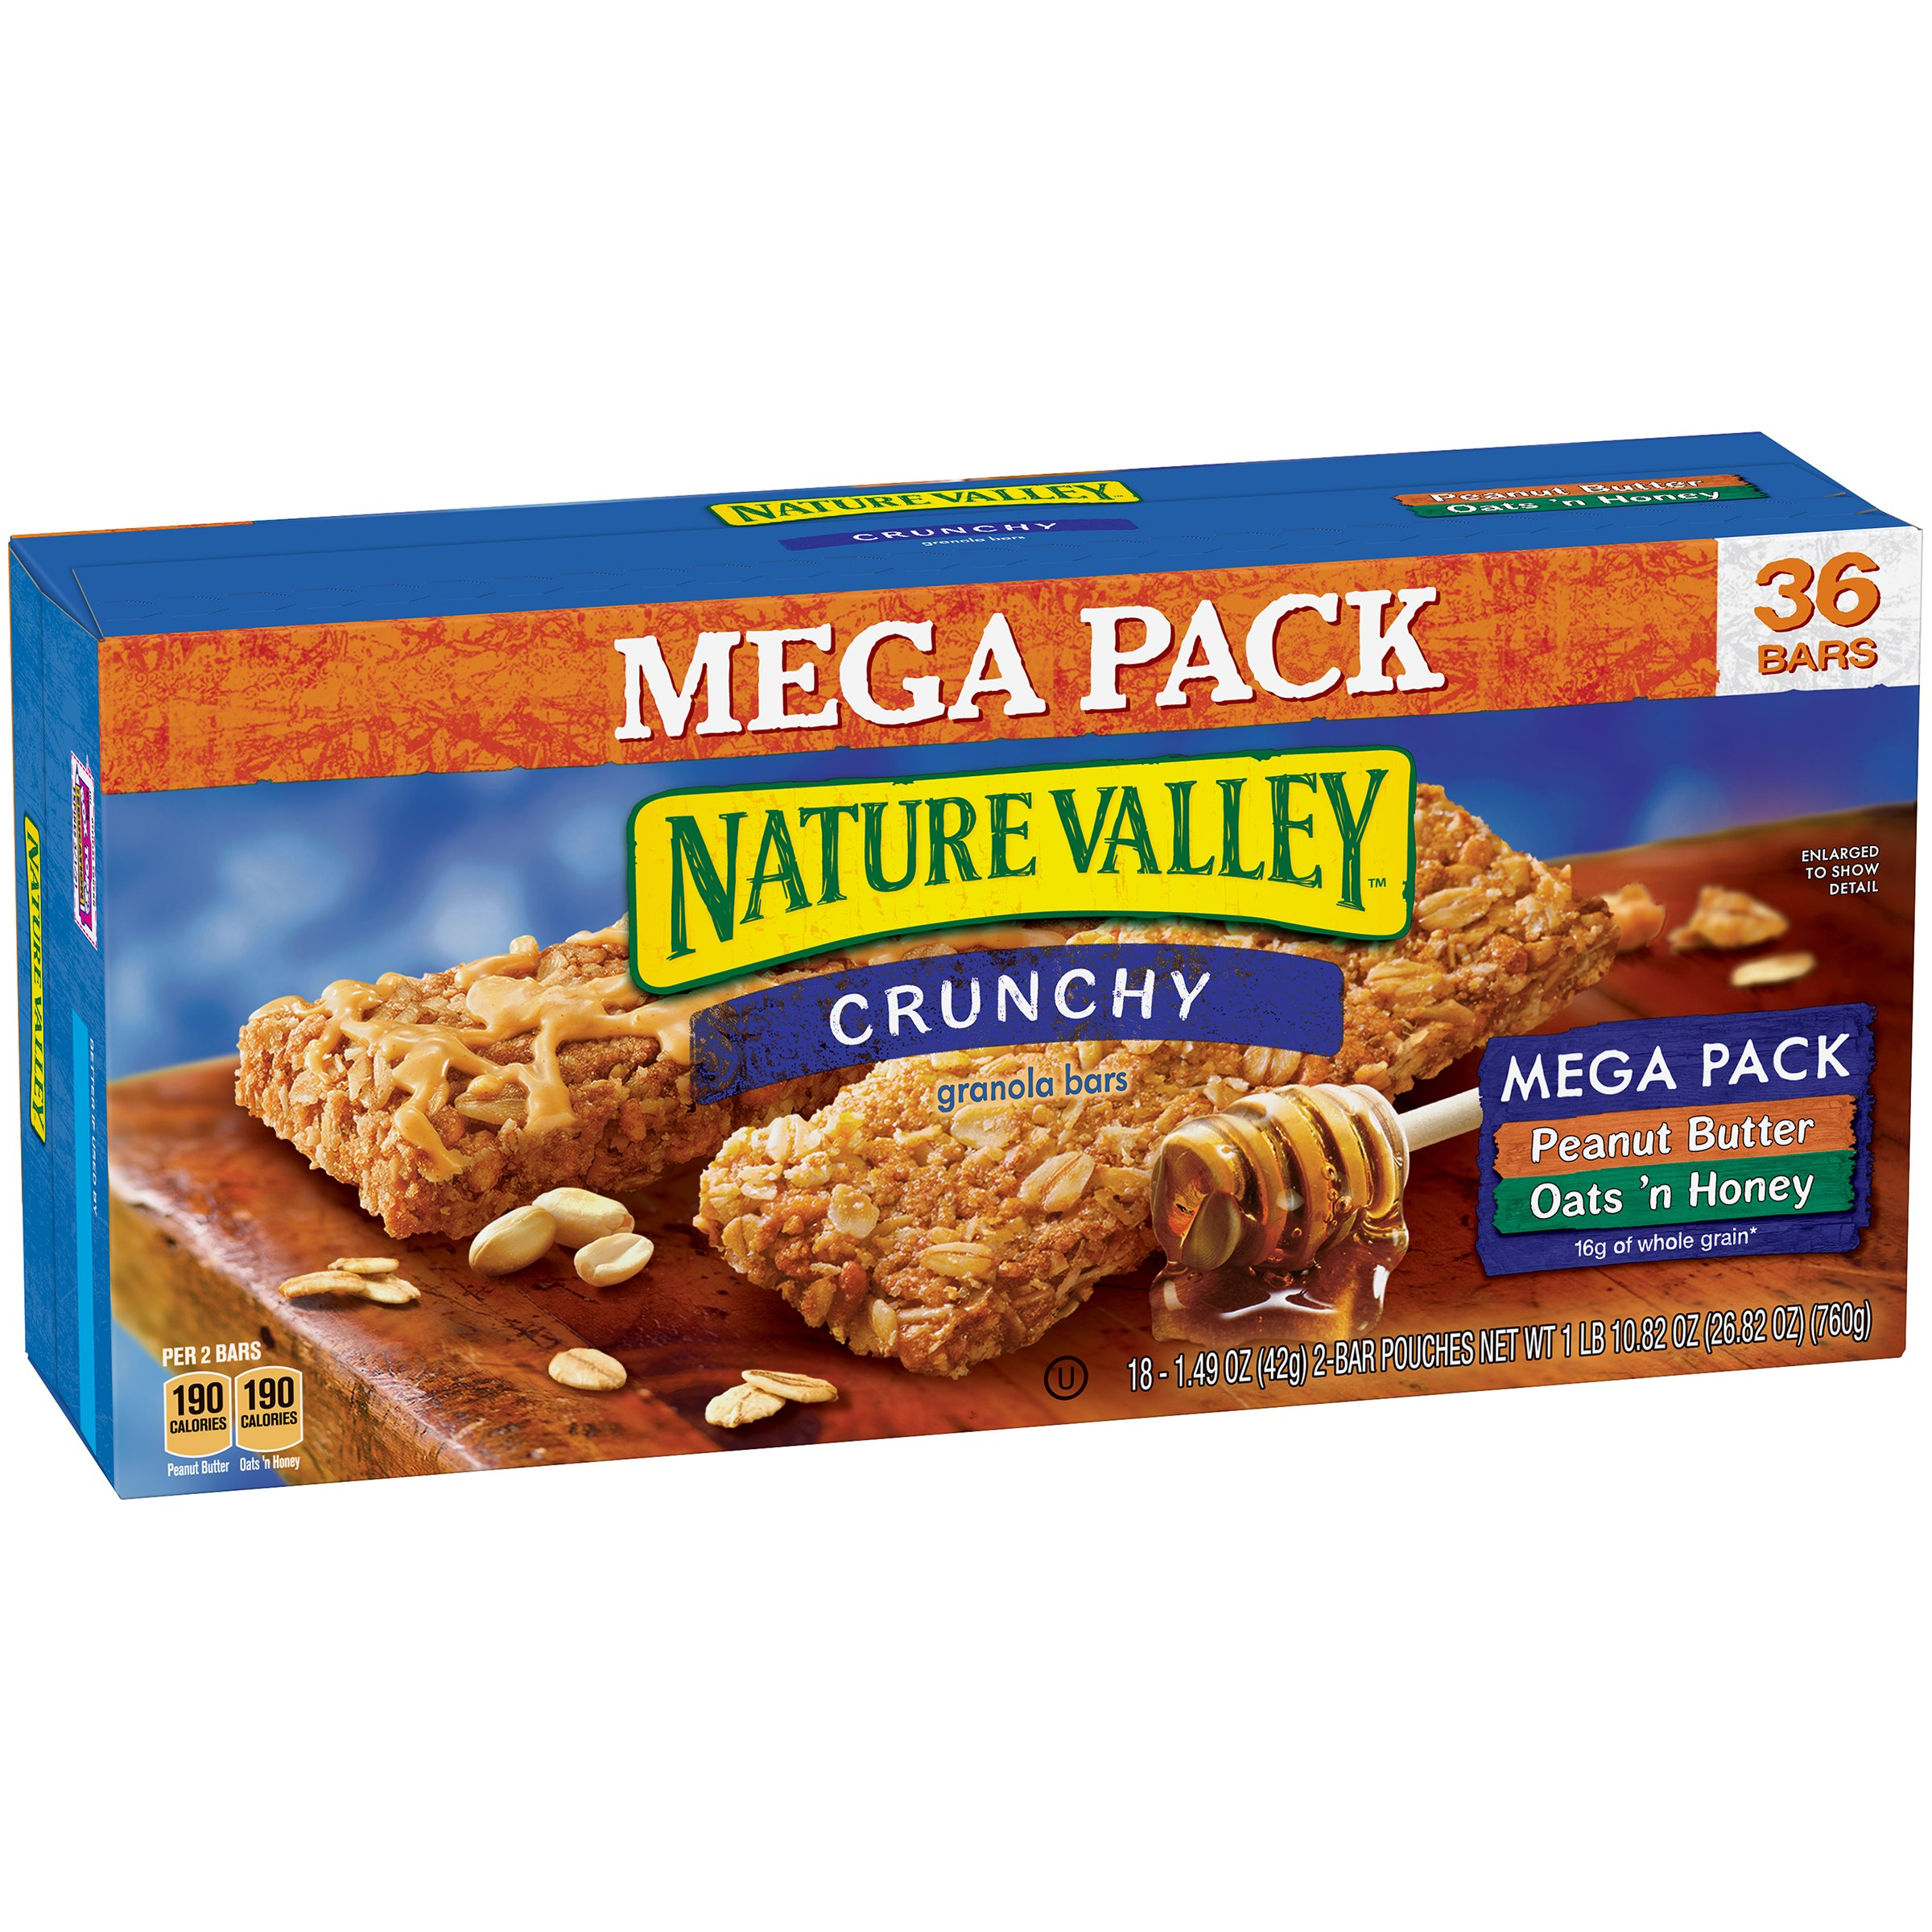 Nature Valley Granola Bars, Crunchy, Mega Pack of Peanut Butter and Oats 'n Honey, 36 Count, Pack of 1